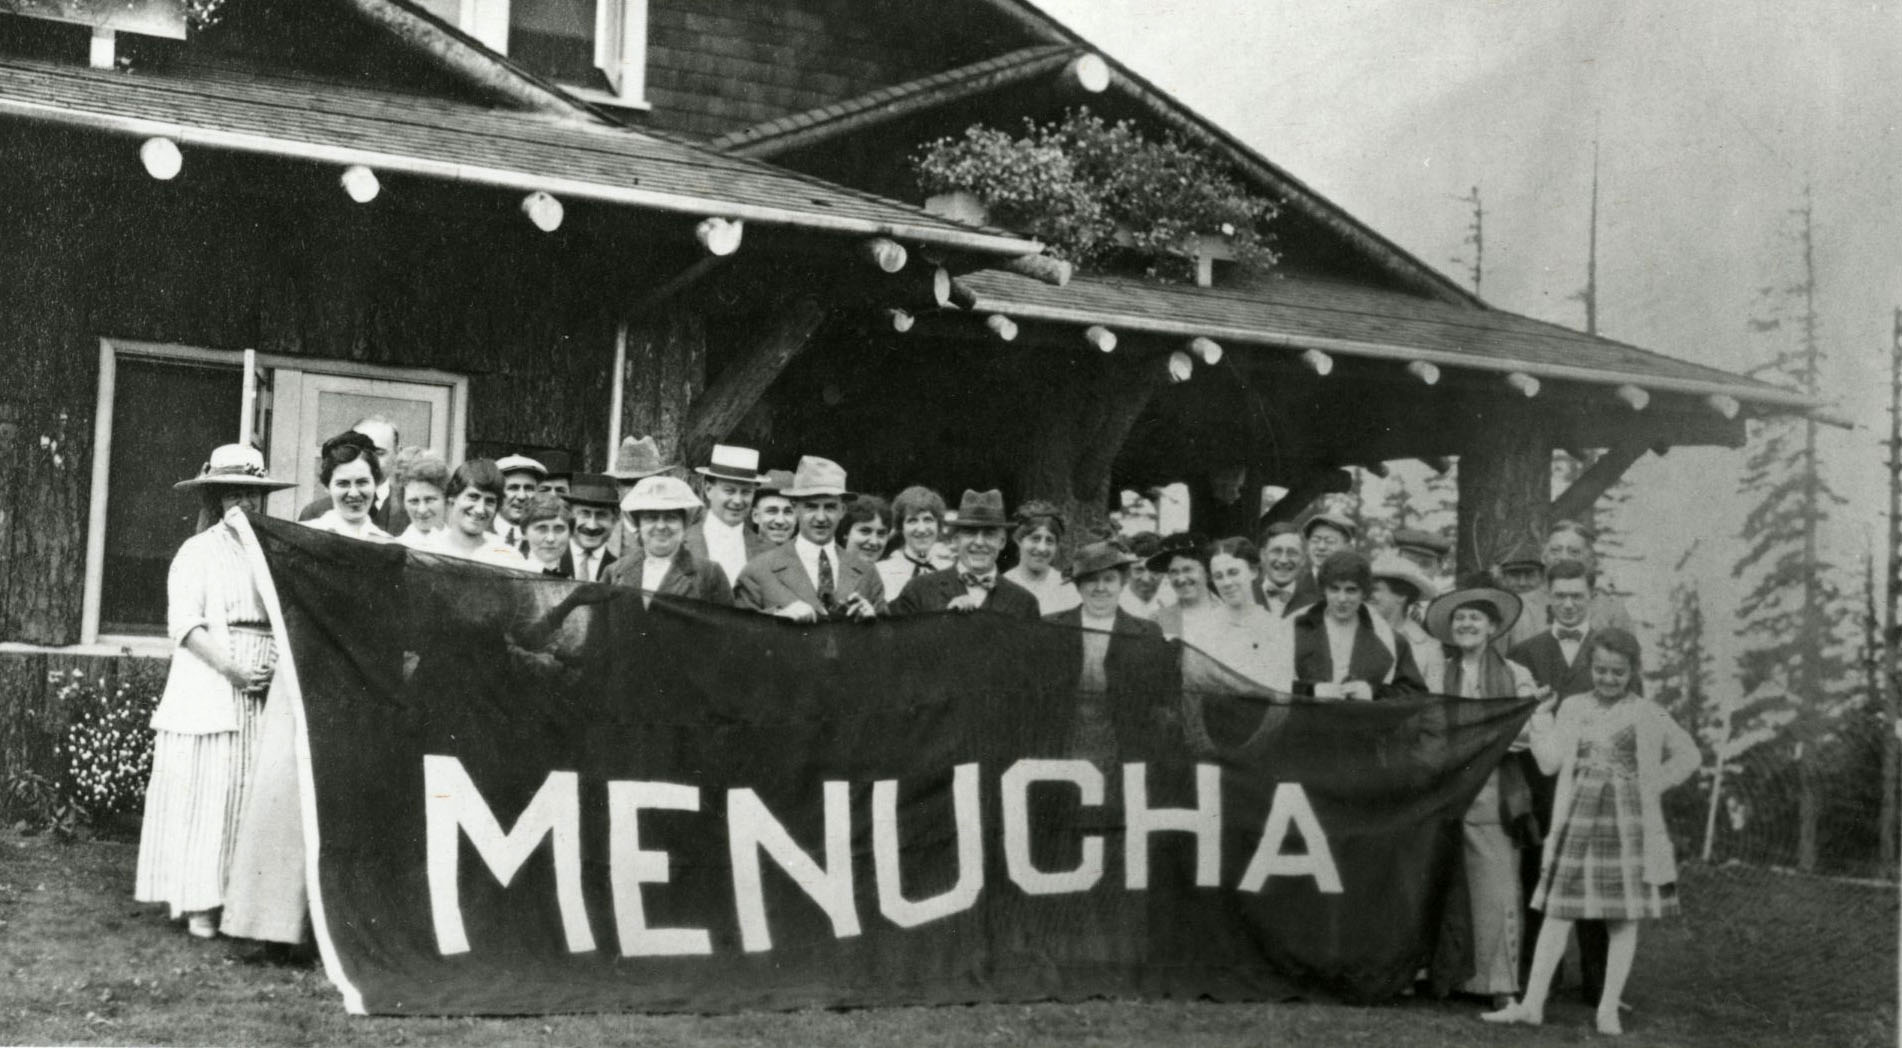 Meier and Frank employees at Menucha. Julius Meier in center, with tie.